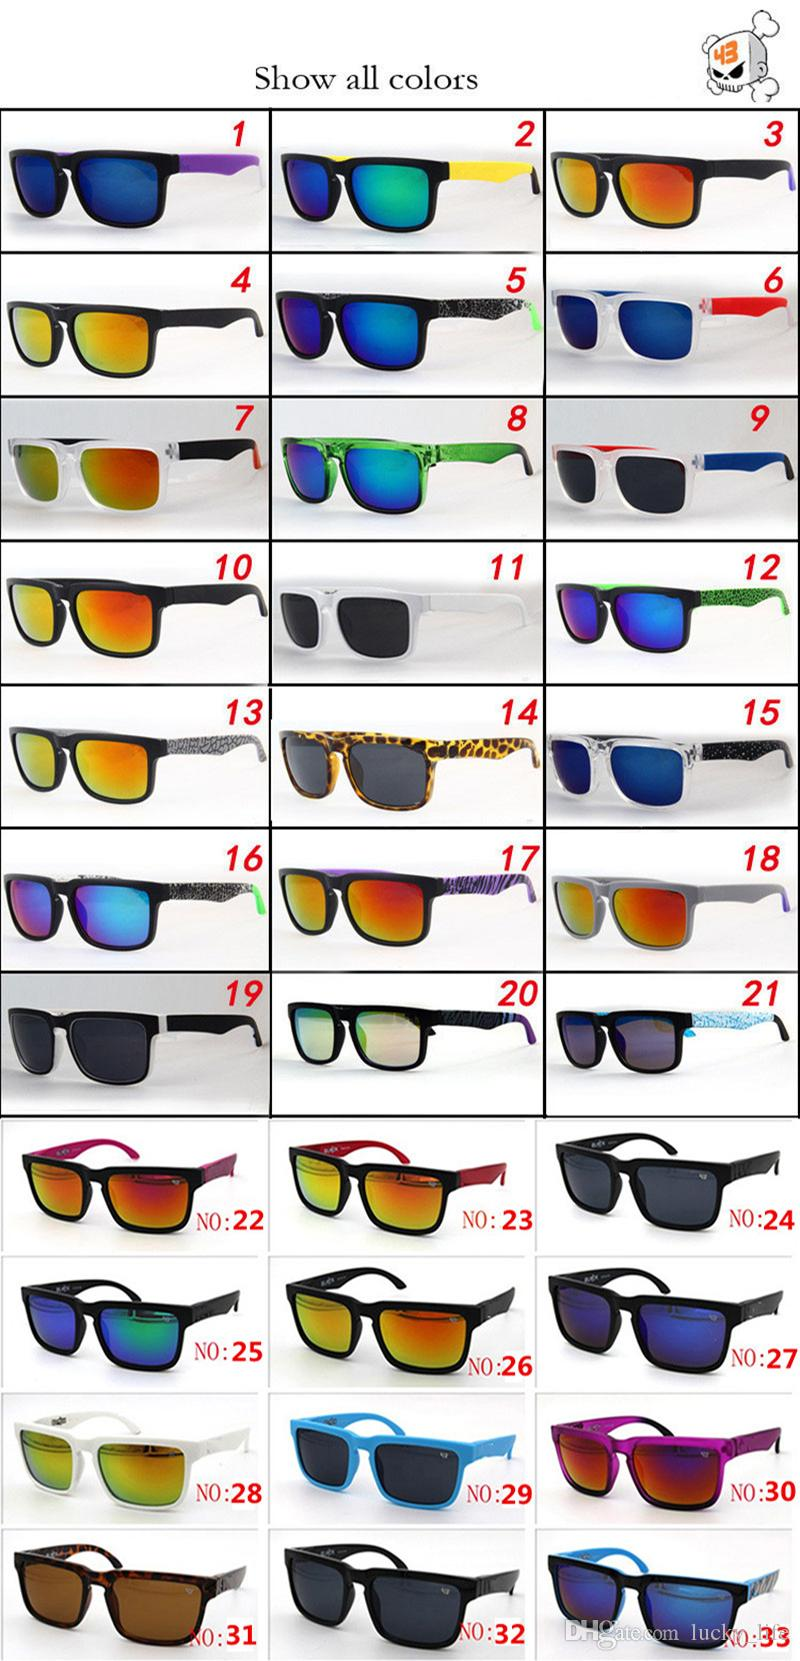 33 Colors Brand Designer Spied Ken Block Helm Sunglasses Men Women Unisex Outdoor Sports Sunglass Full Frame Eyewear